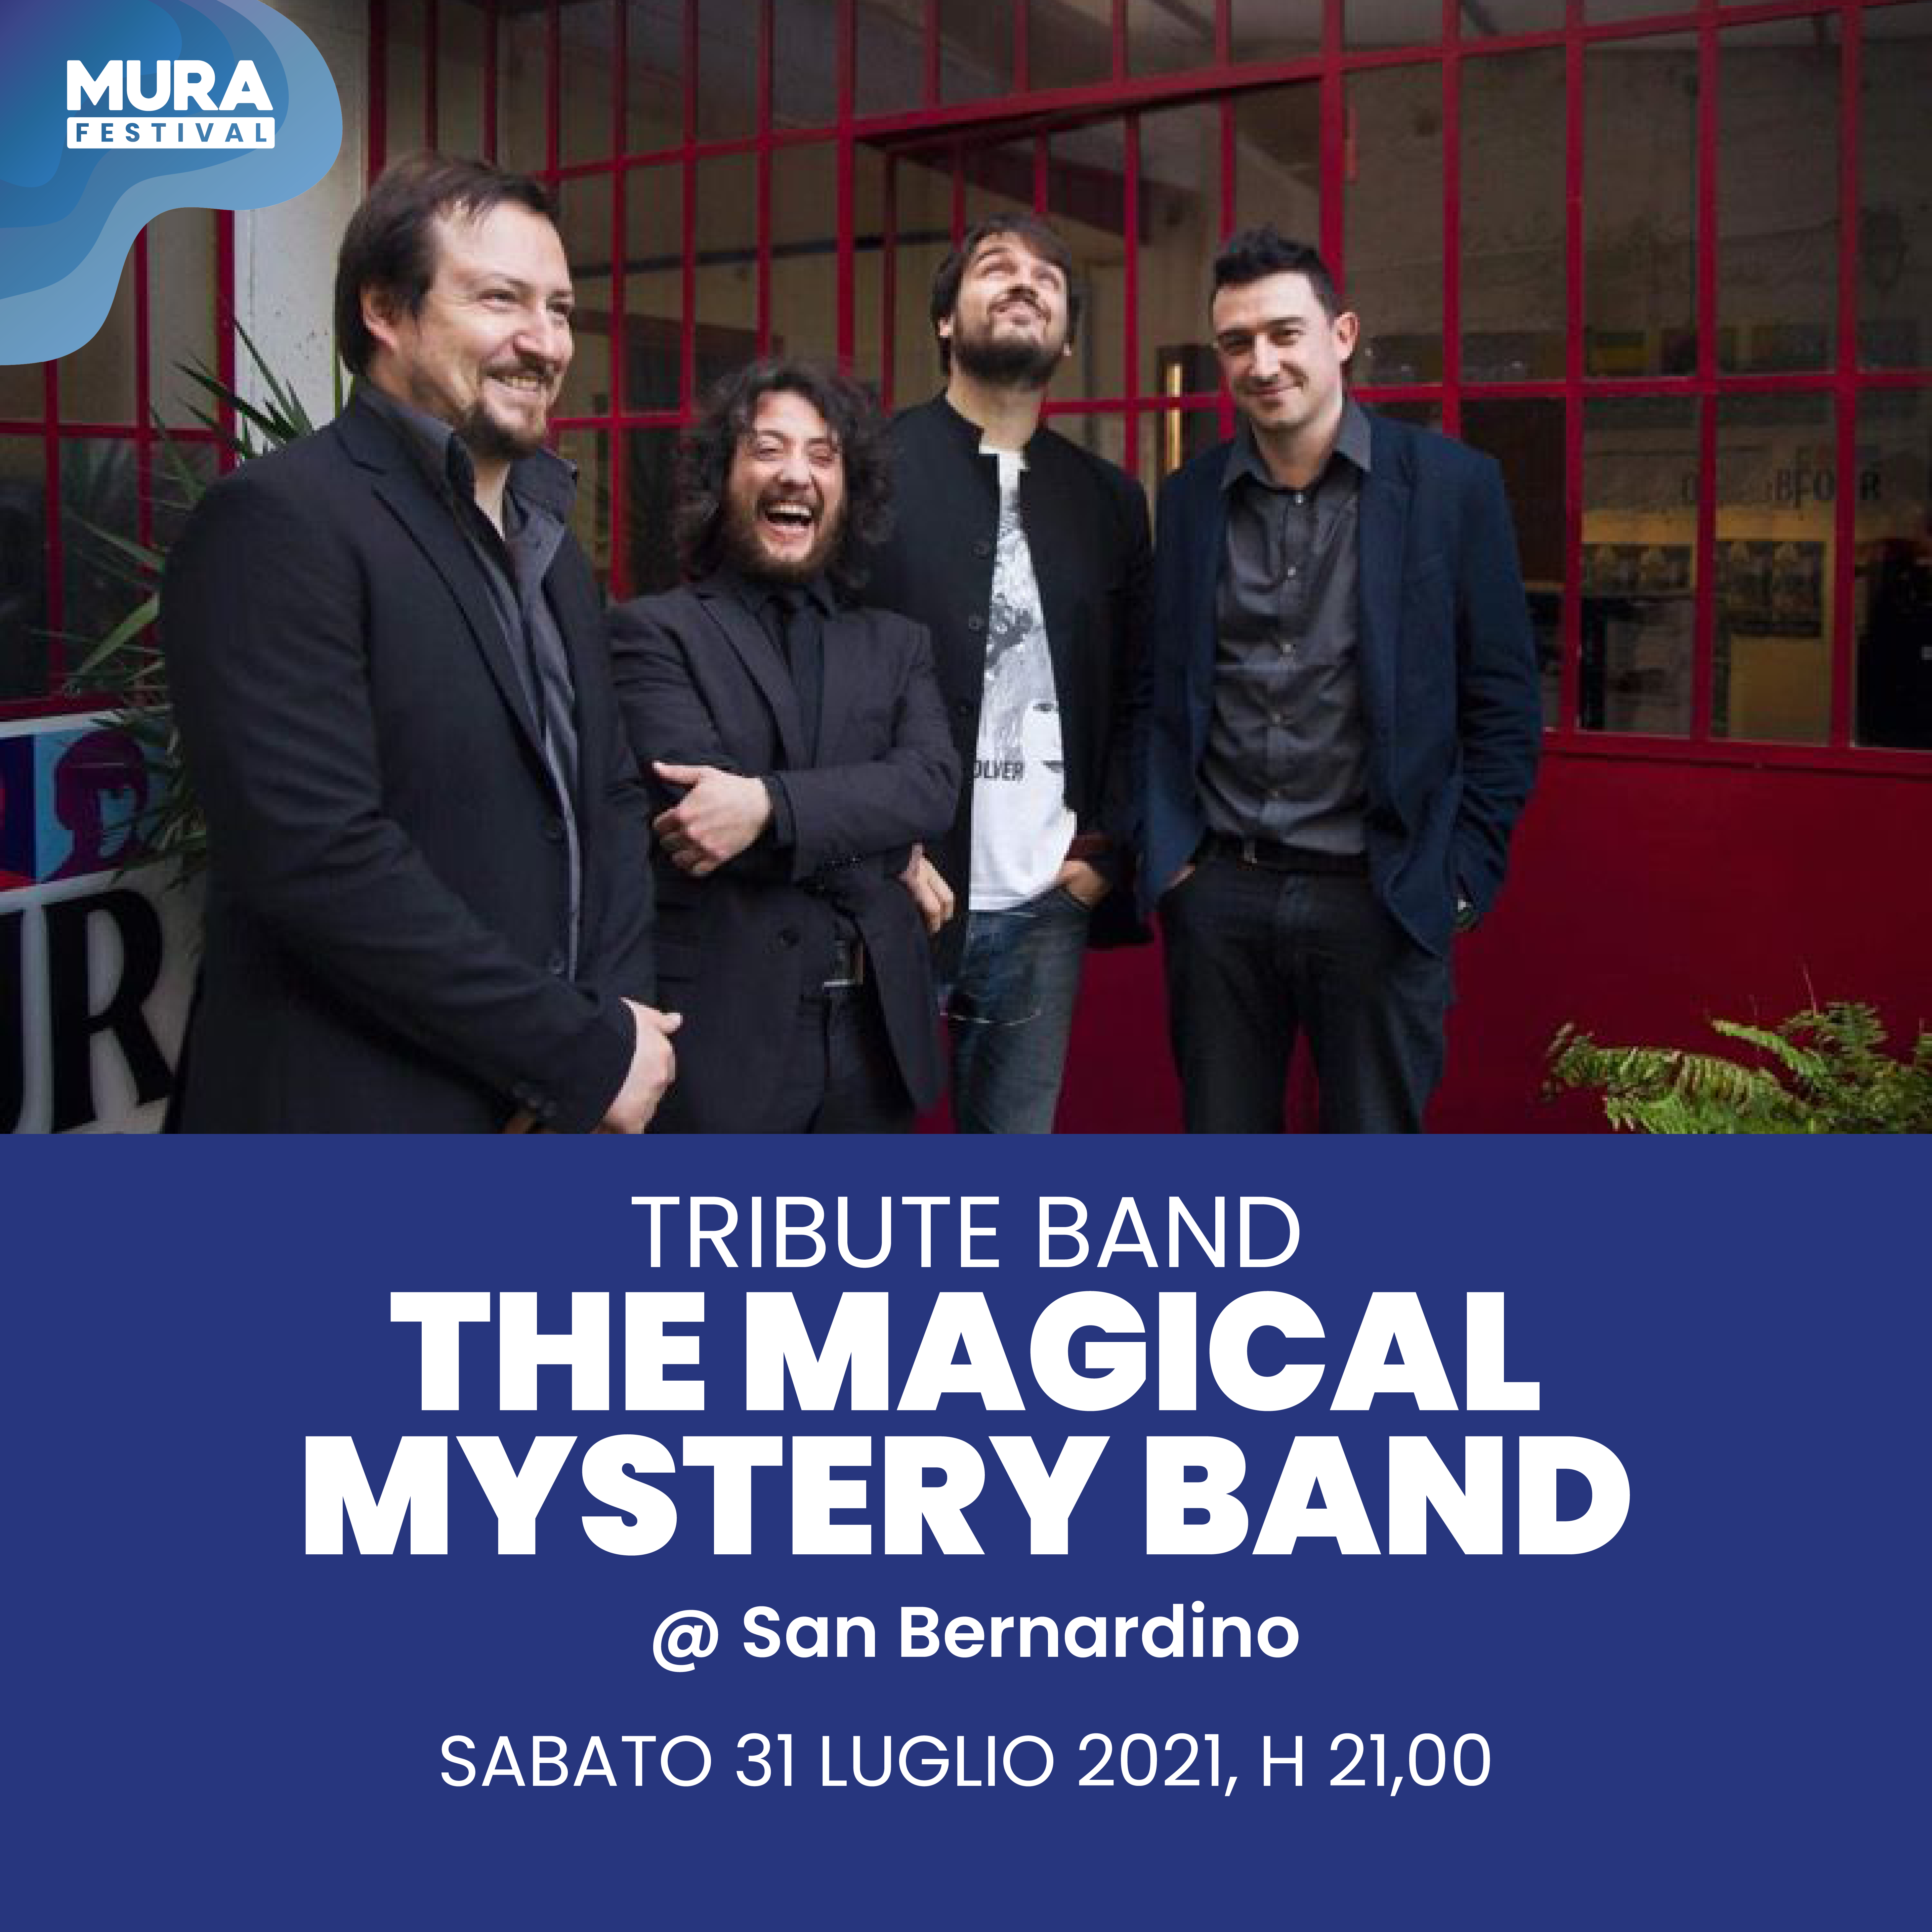 The magical mystery band